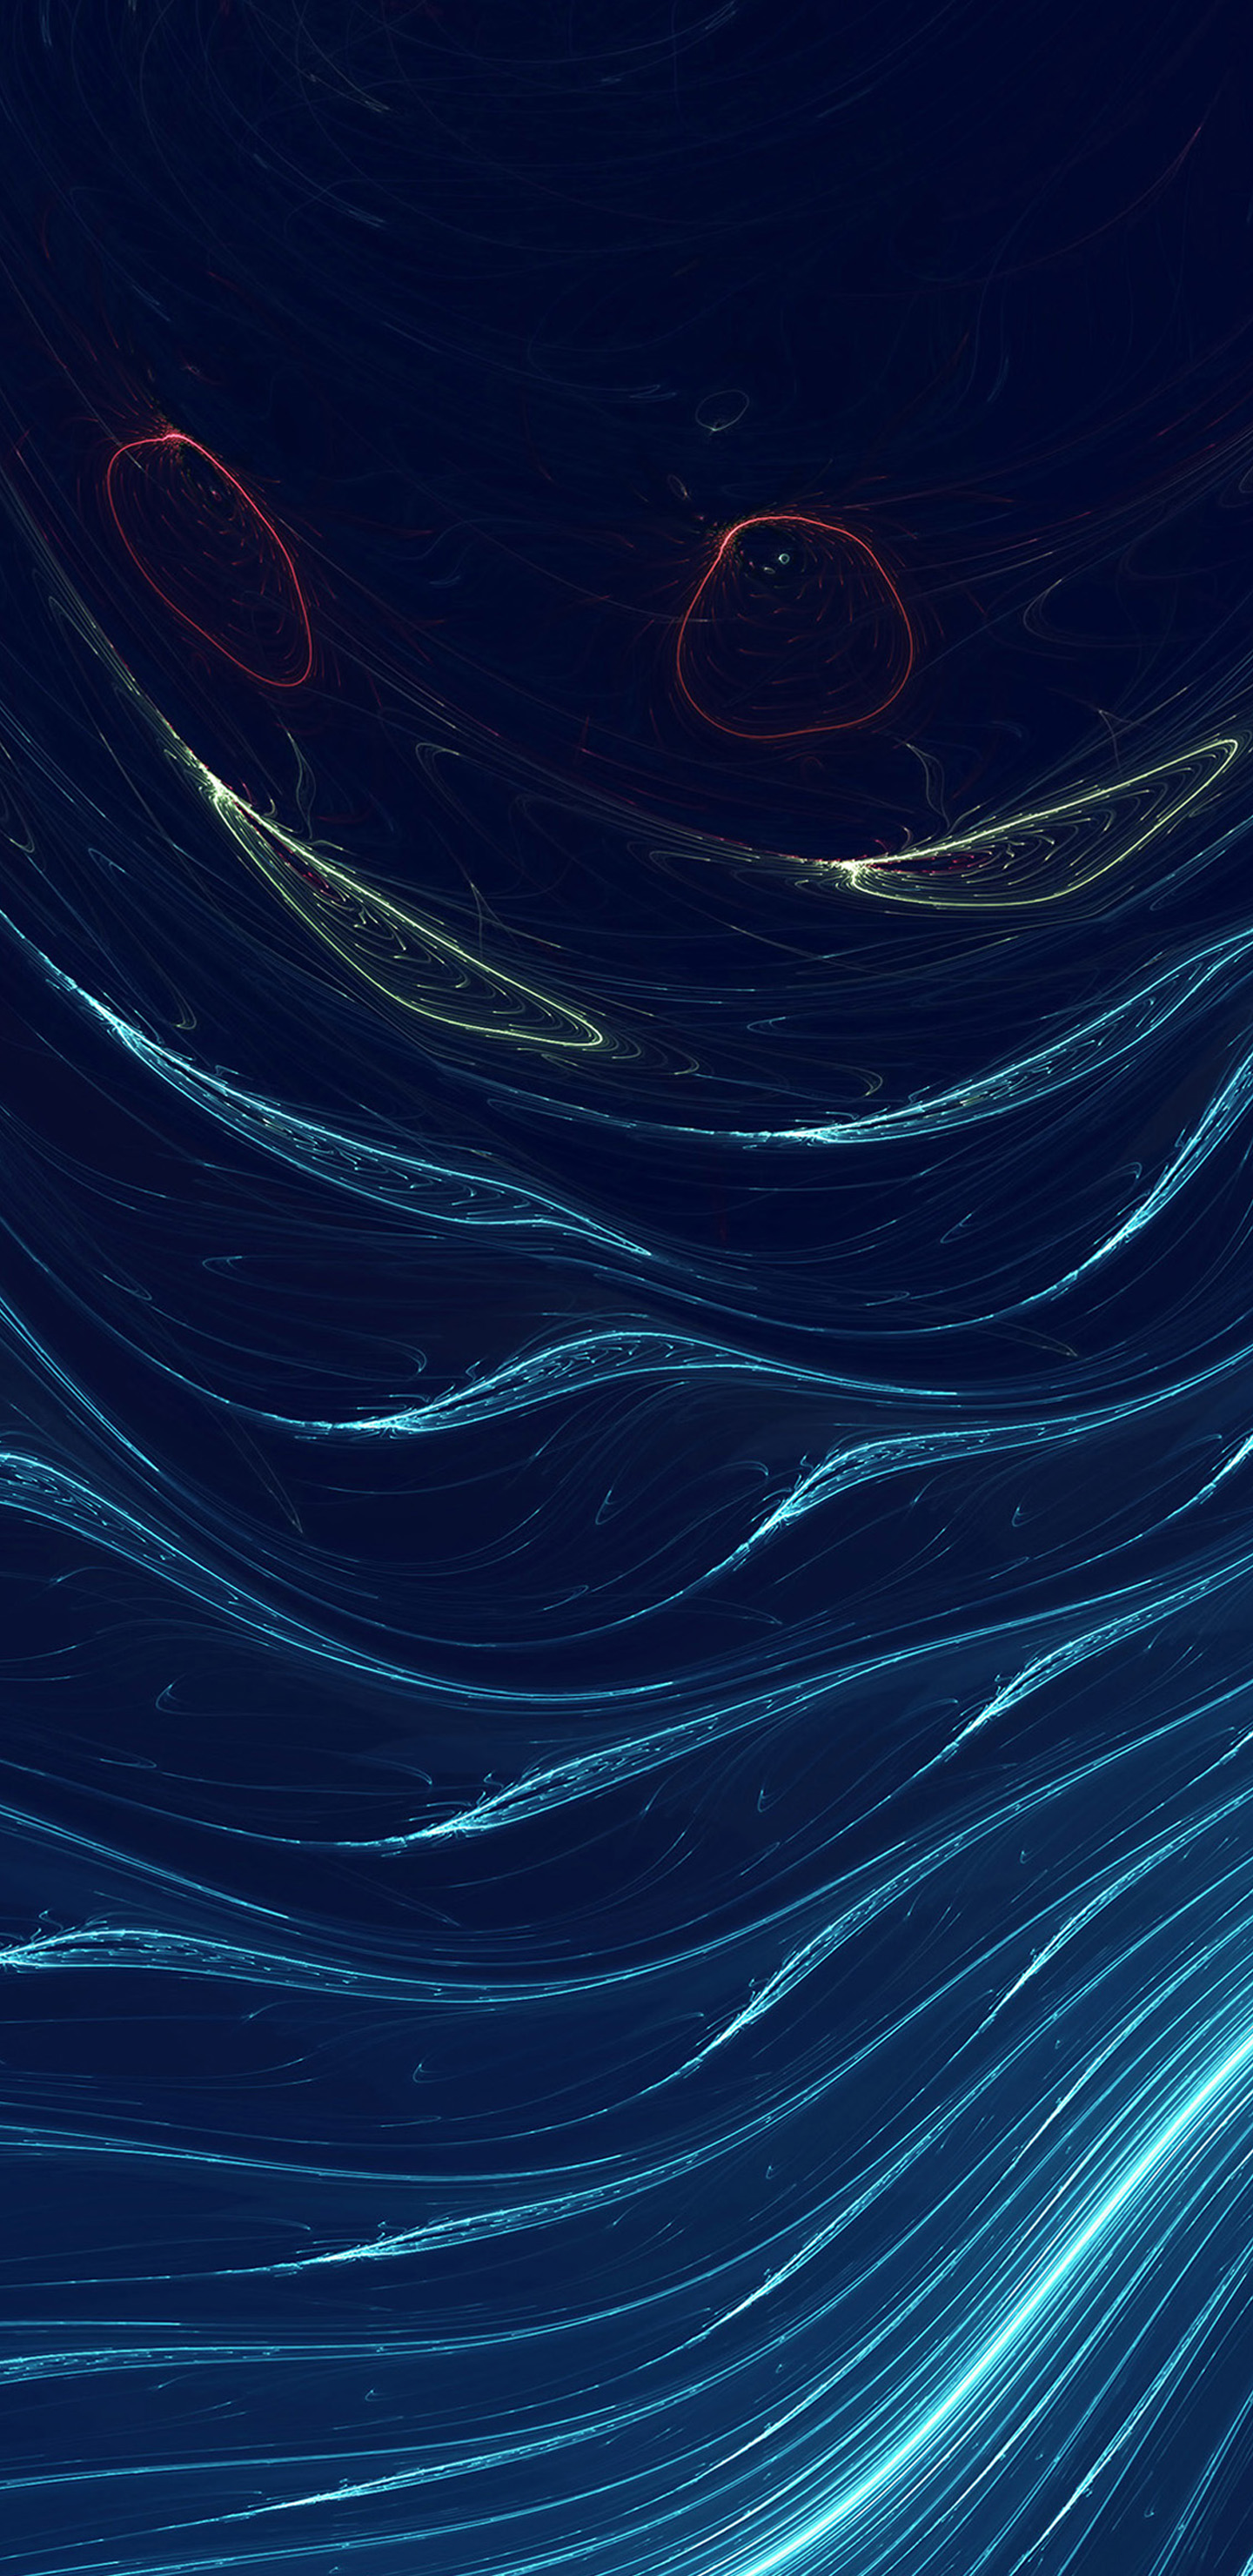 Samsung Galaxy S9 Wallpaper For Vs74 Space Line Curve Samsung Galaxy S9 Wallpapers Hd 802 Hd Wallpaper Backgrounds Download